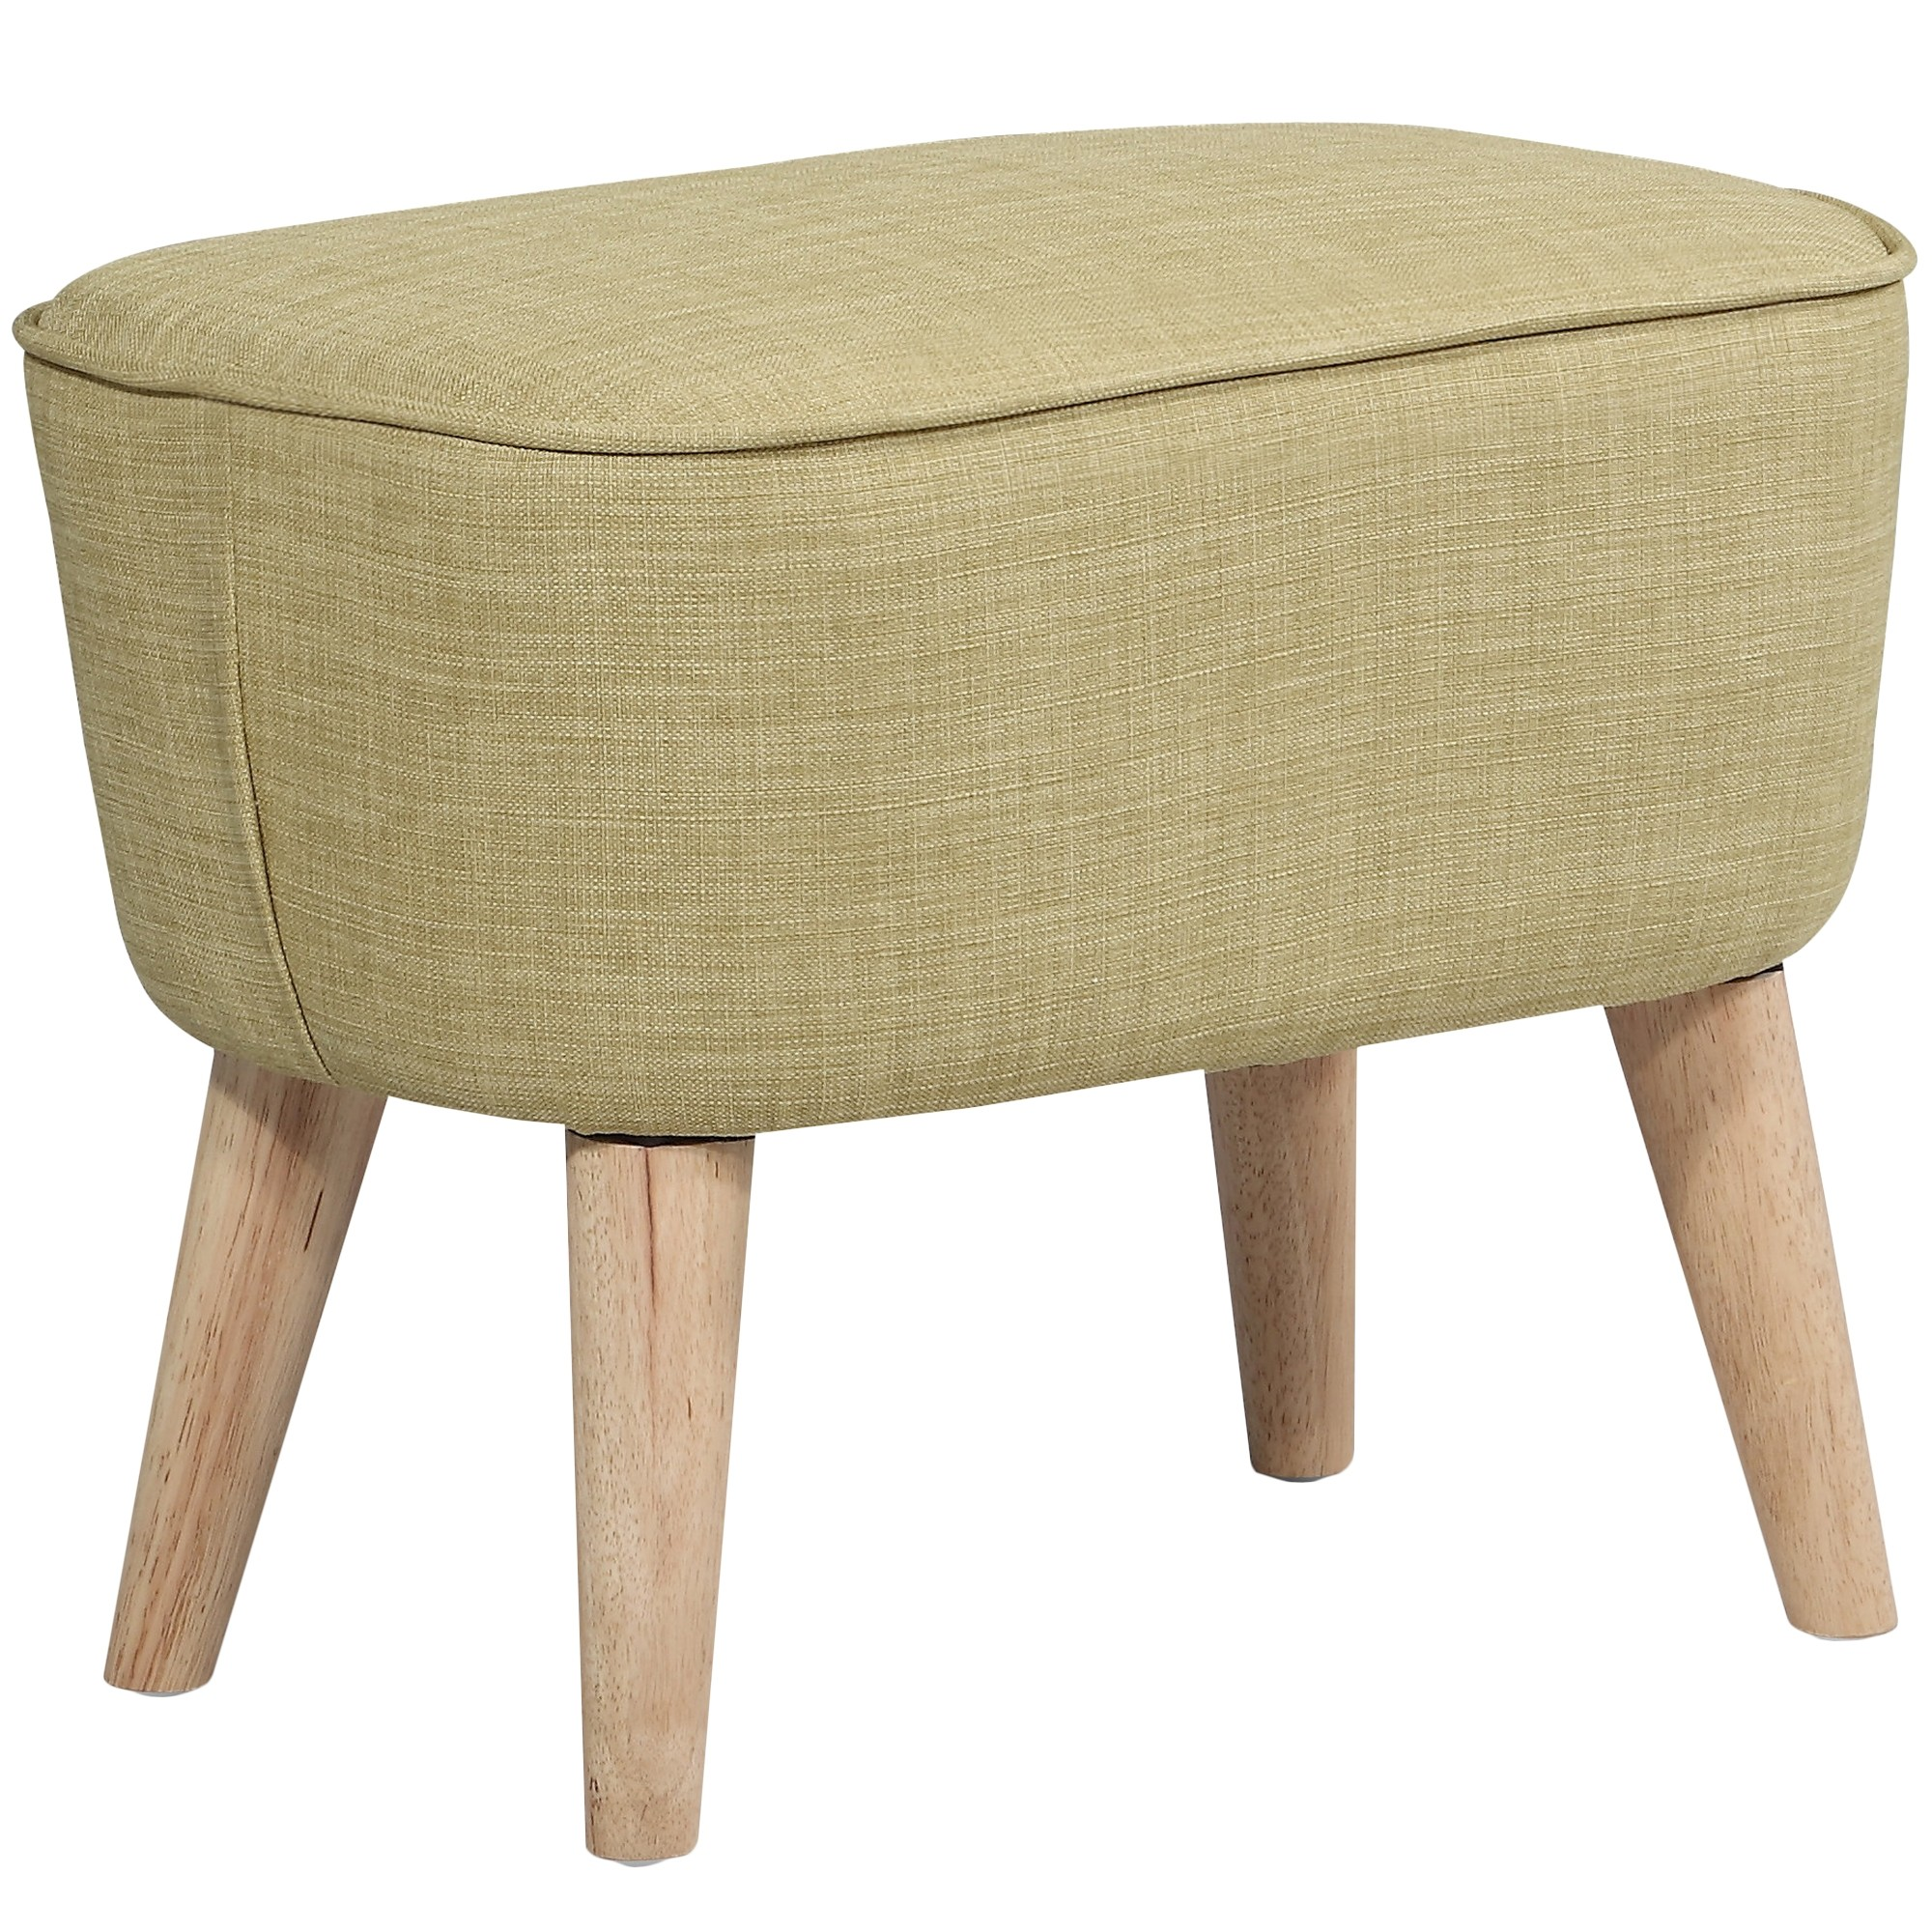 Molena Commercial Grade Fabric Foot Stool, Olive